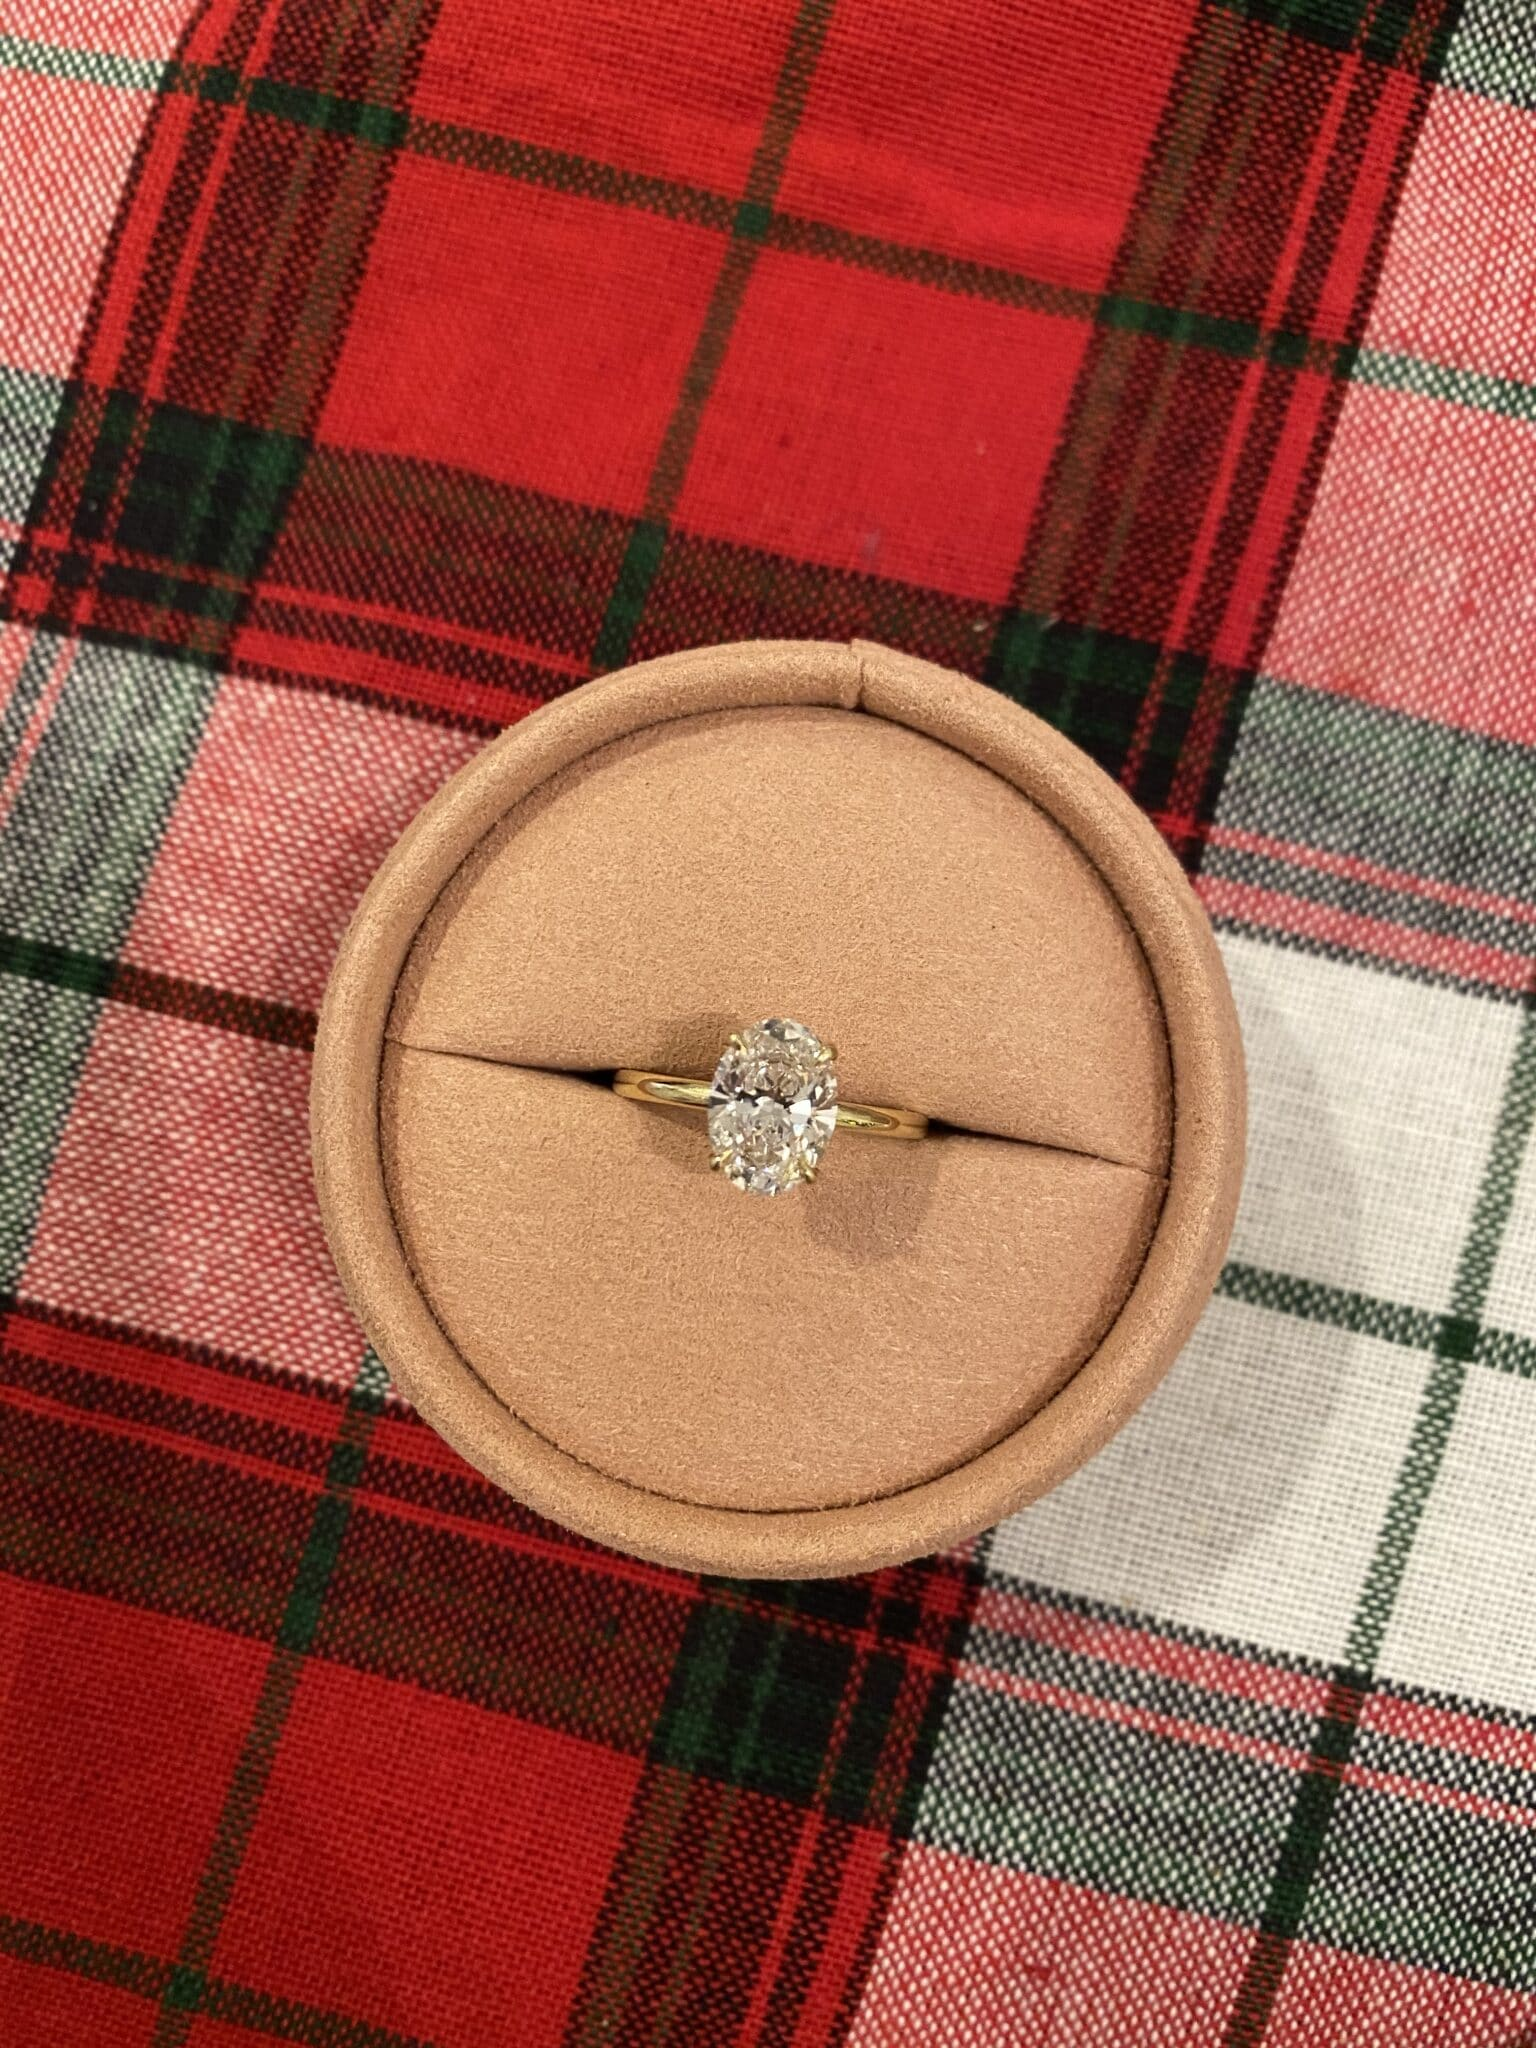 Vrai over engagement ring